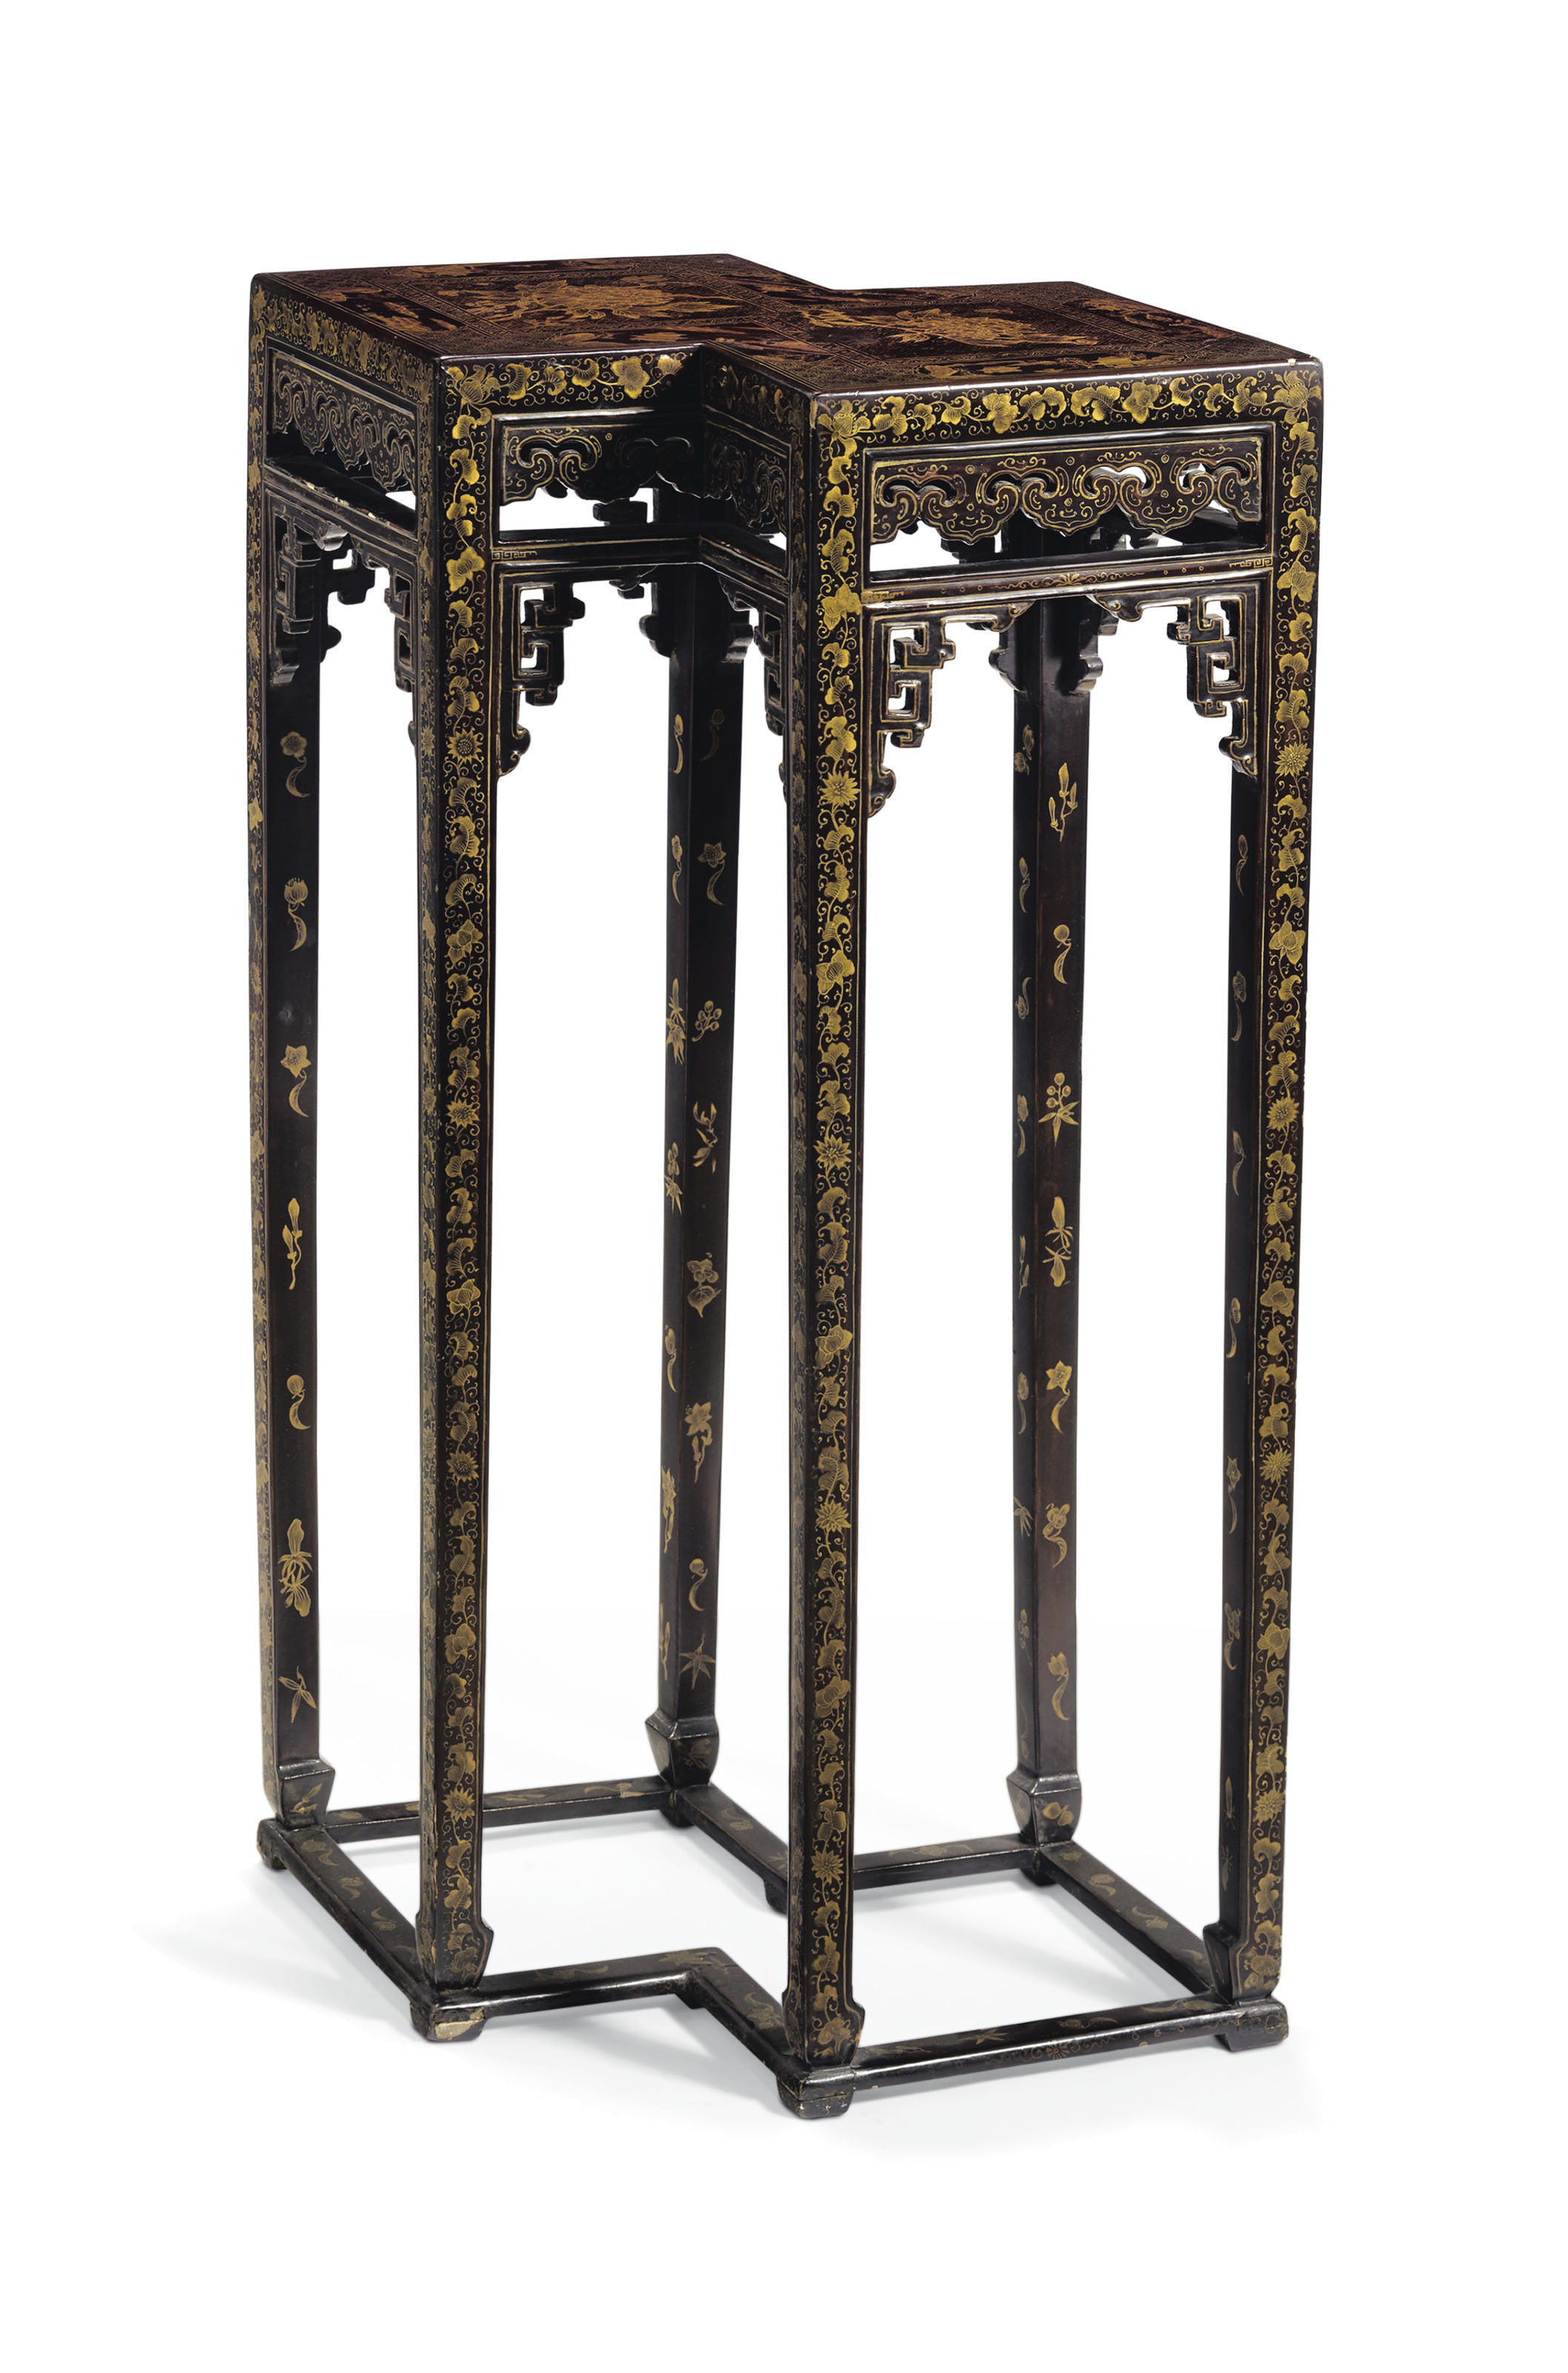 A Gilt Decorated Black Lacquer Double Lozenge Form Stand